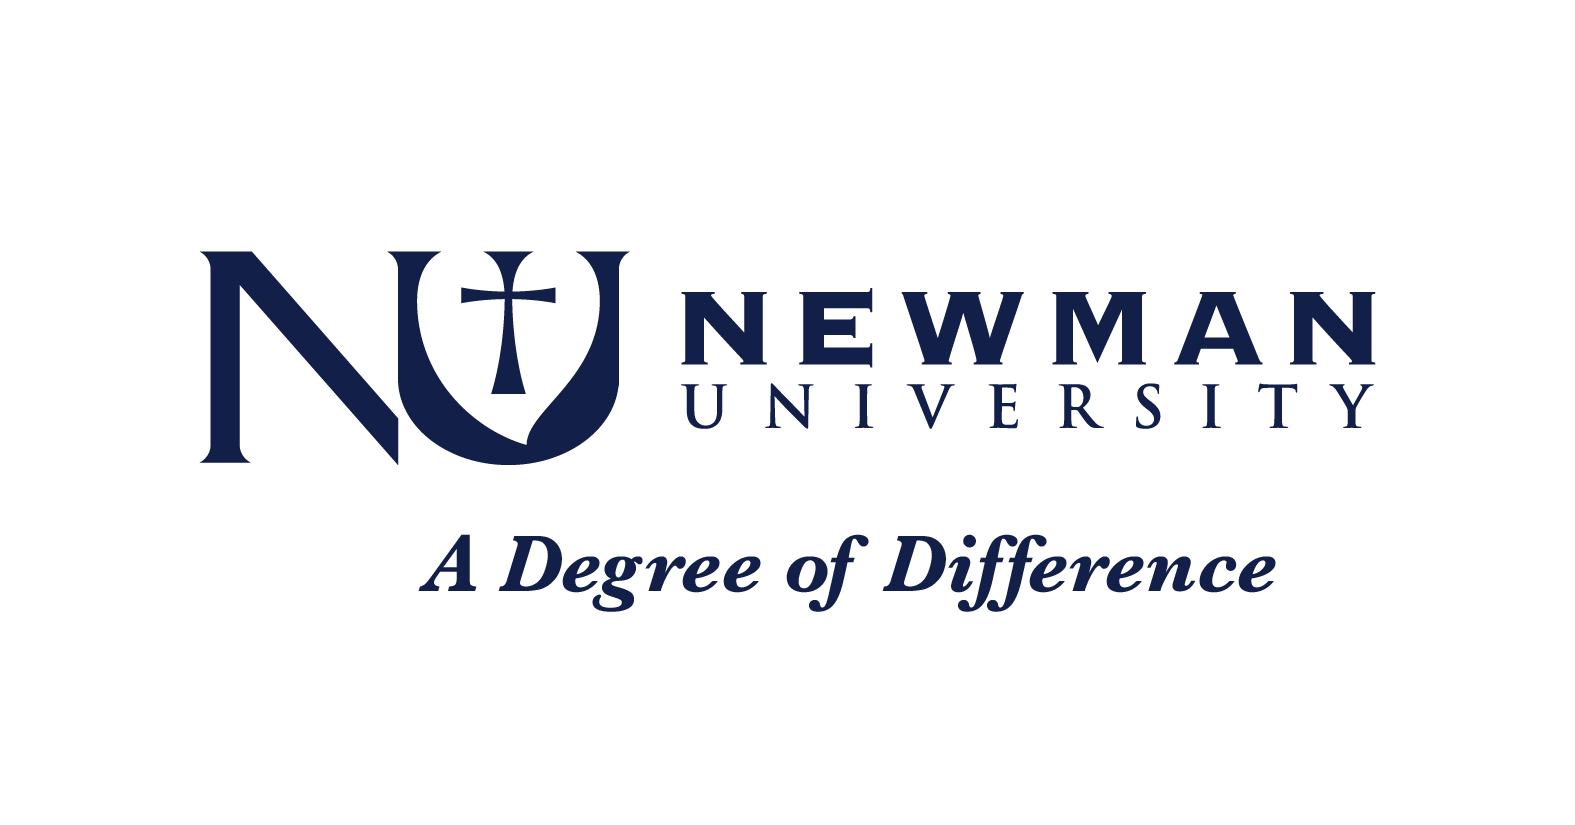 More than meets the eye:   Newman University's logo turns 20-years-old